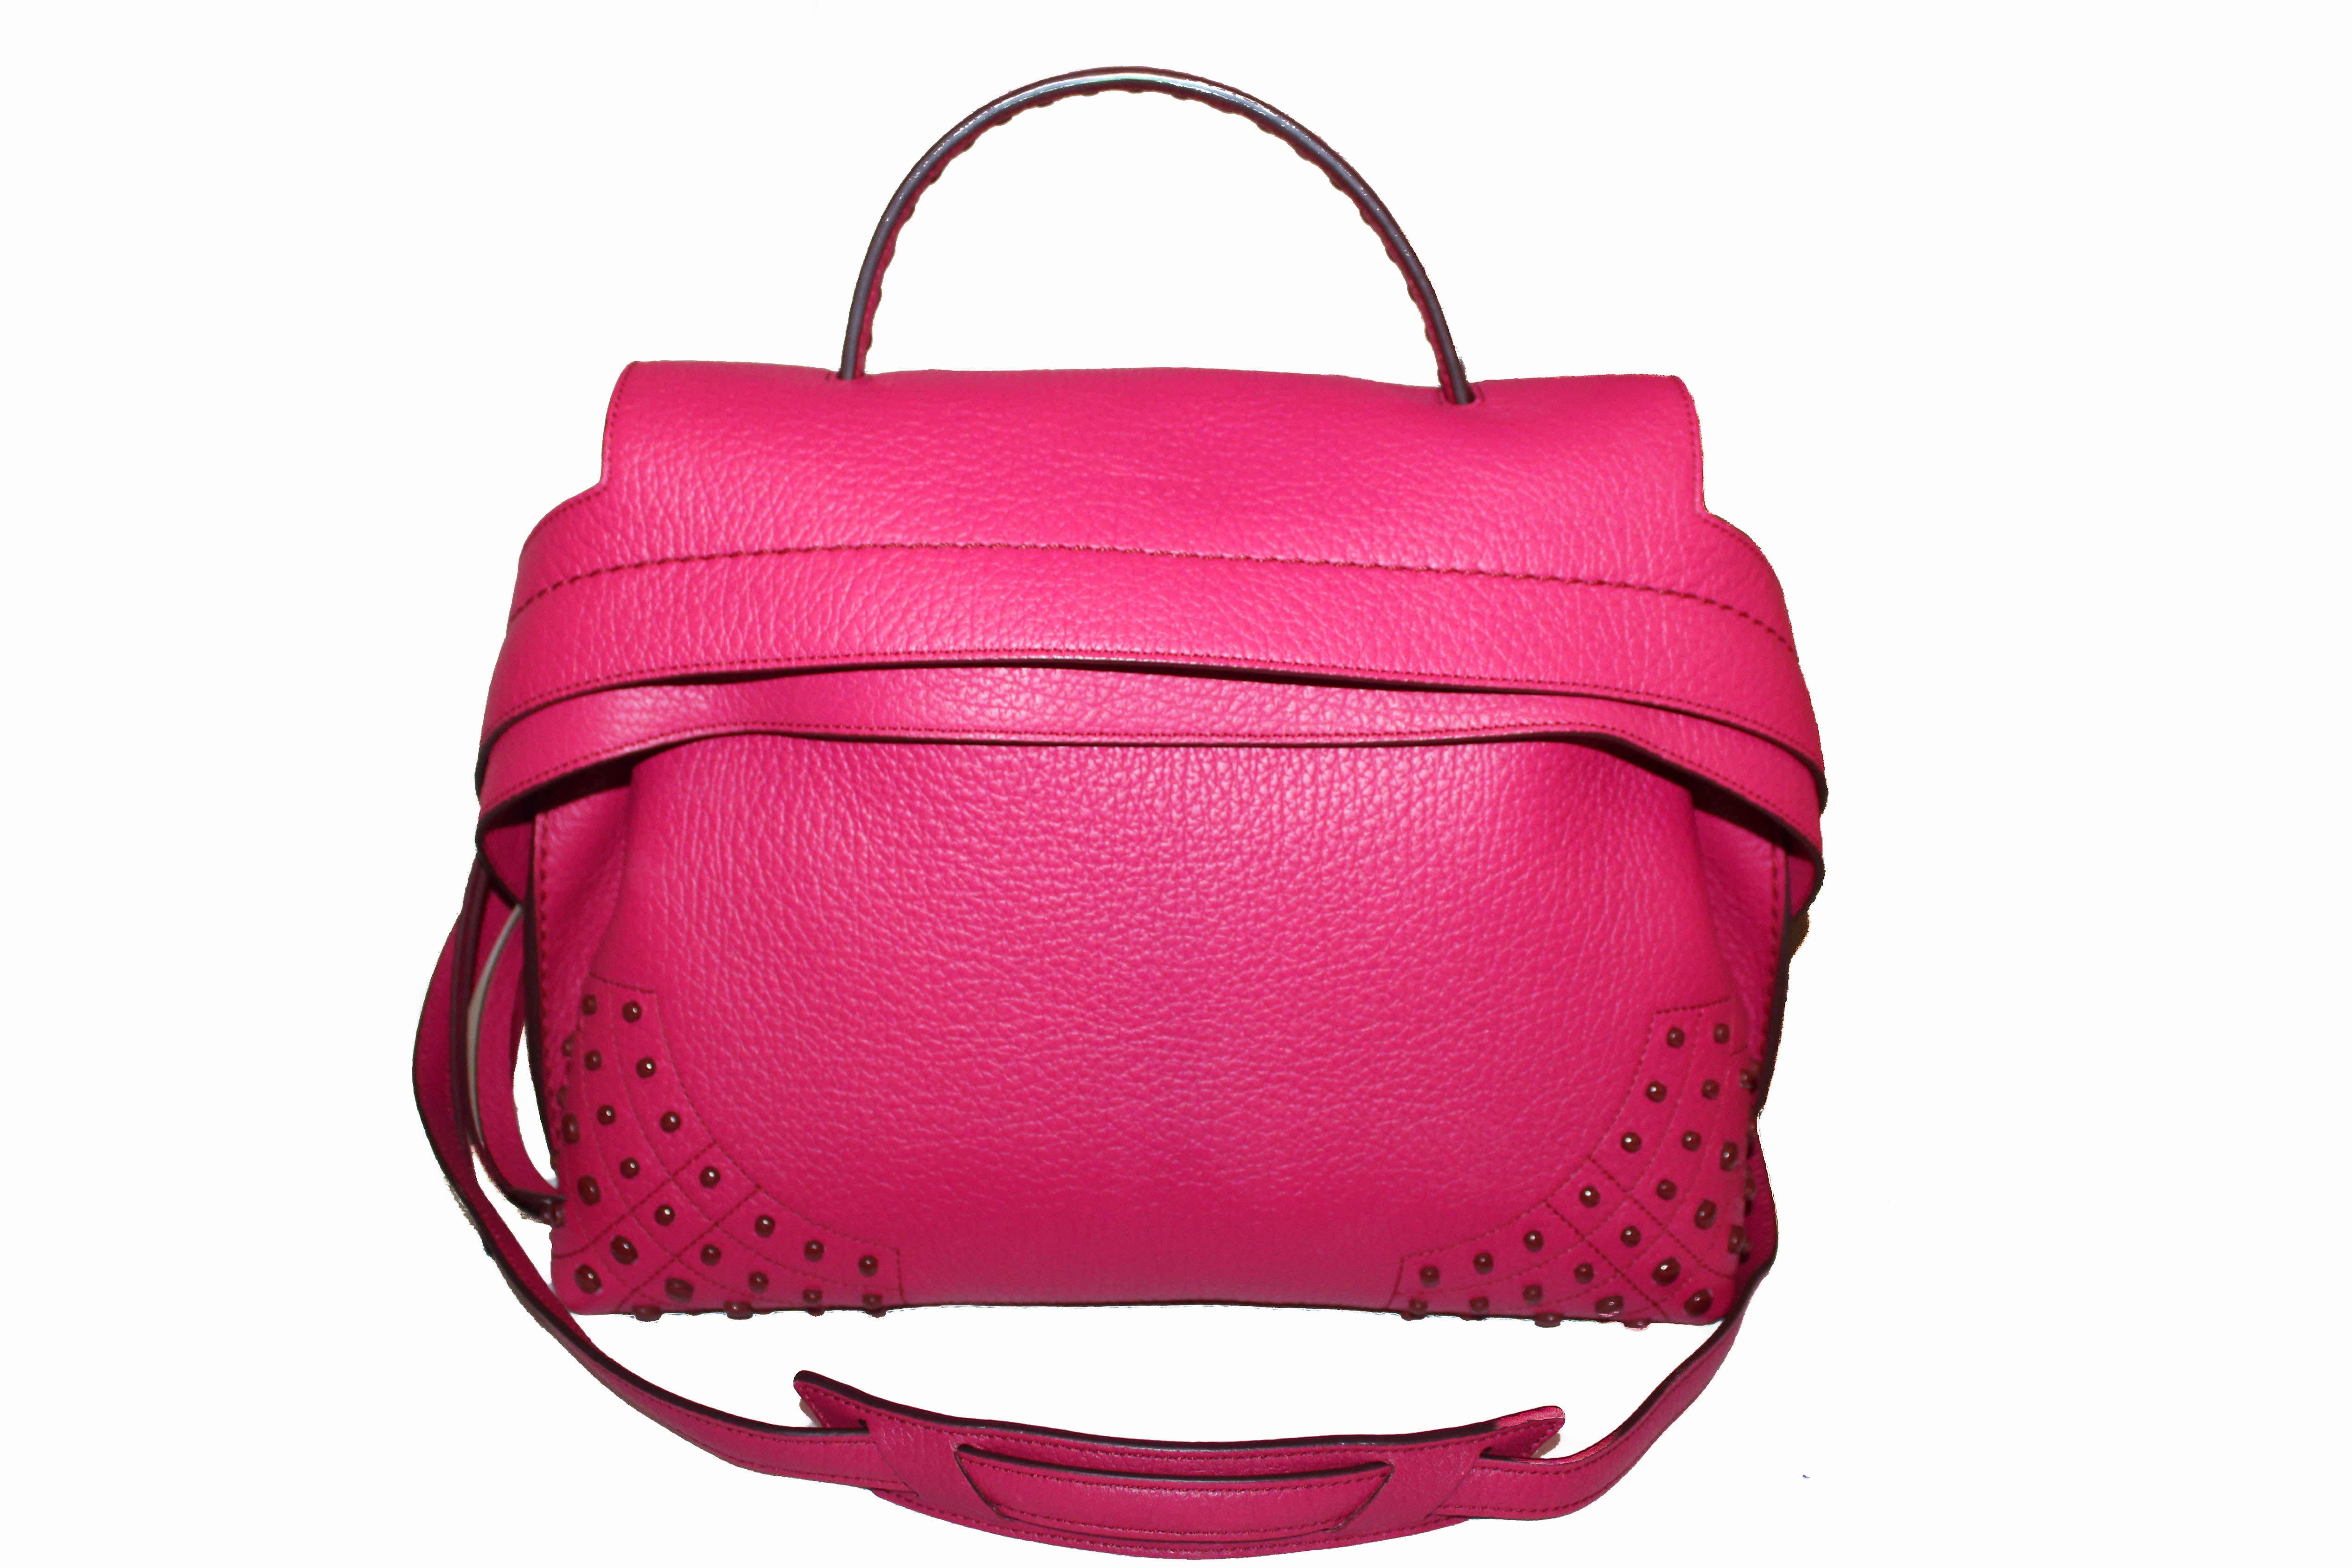 Authentic Tod's Fuchsia Pink Leather Patta Monospalla Tote Bag